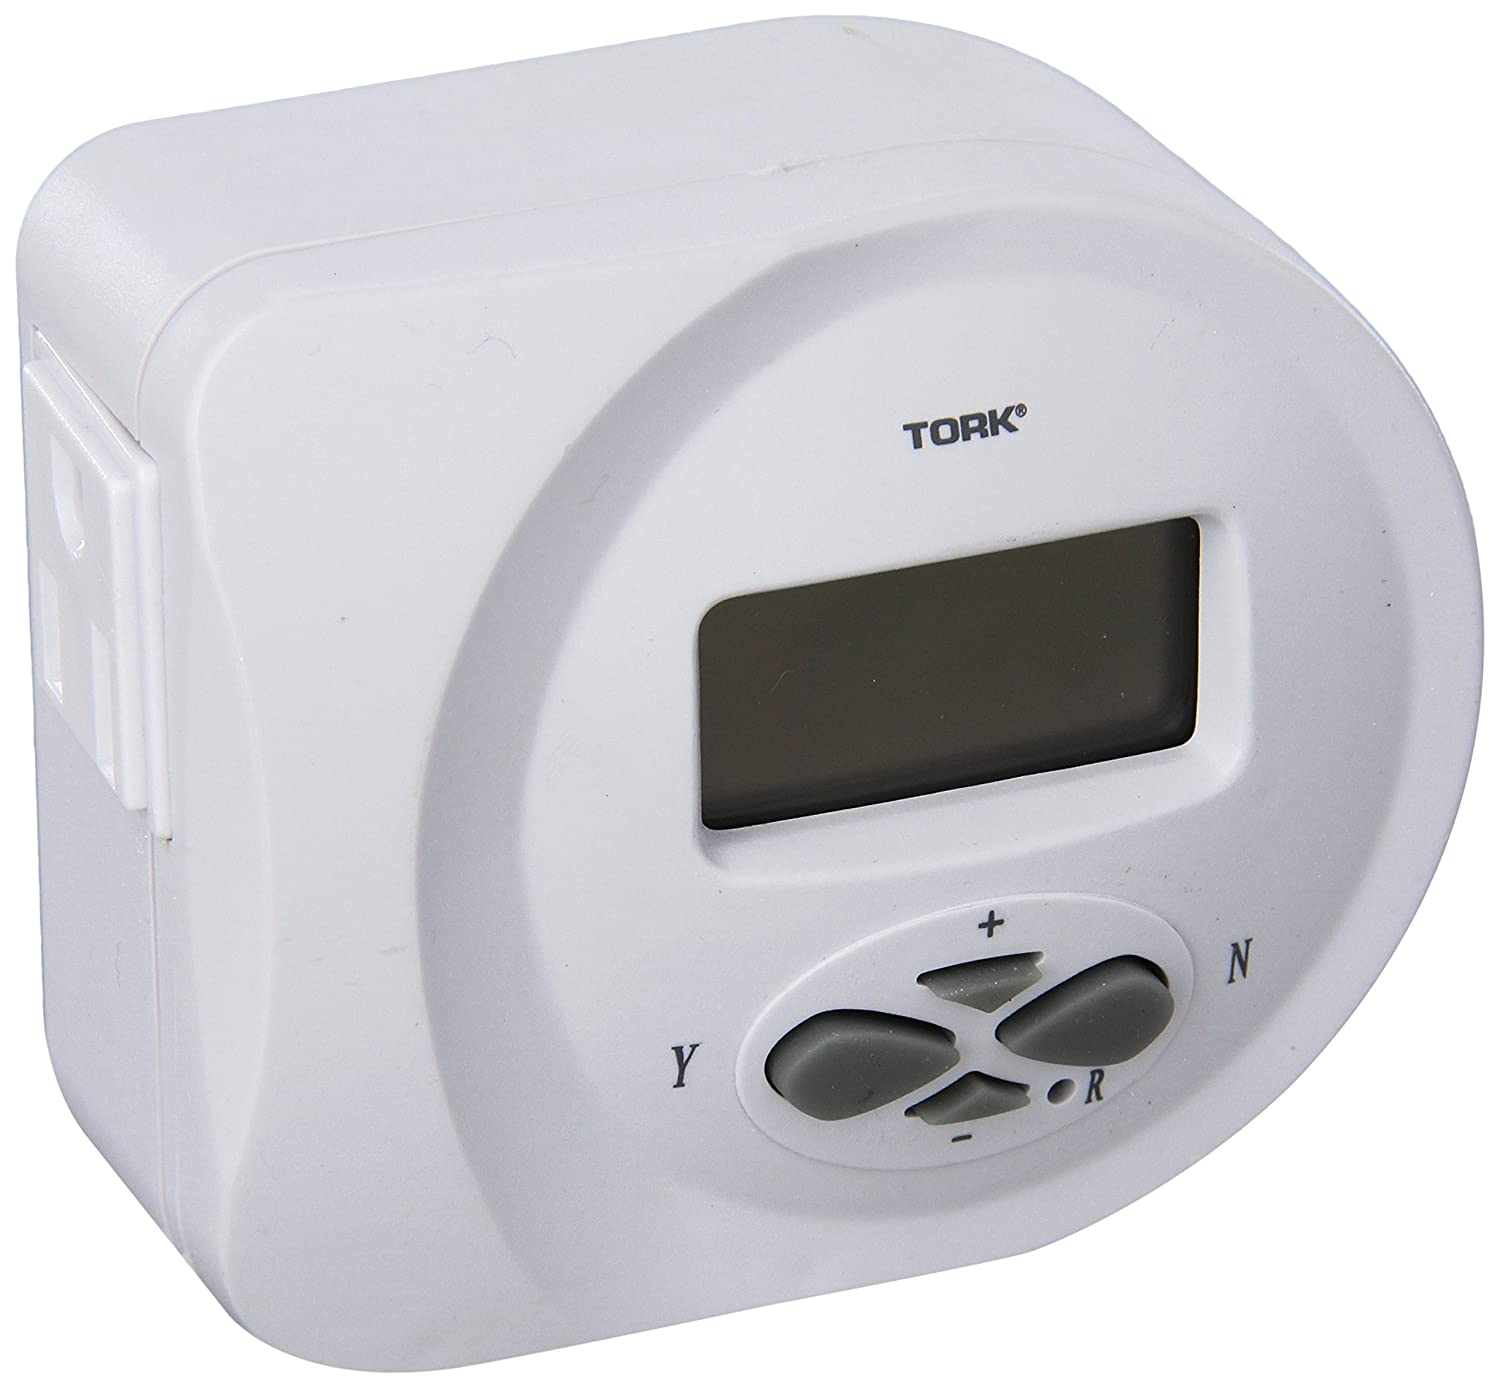 Tork 455d 7 day digital timer 15a grounded 2 outlet amazon tork 455d 7 day digital timer 15a grounded 2 outlet amazon industrial scientific malvernweather Choice Image